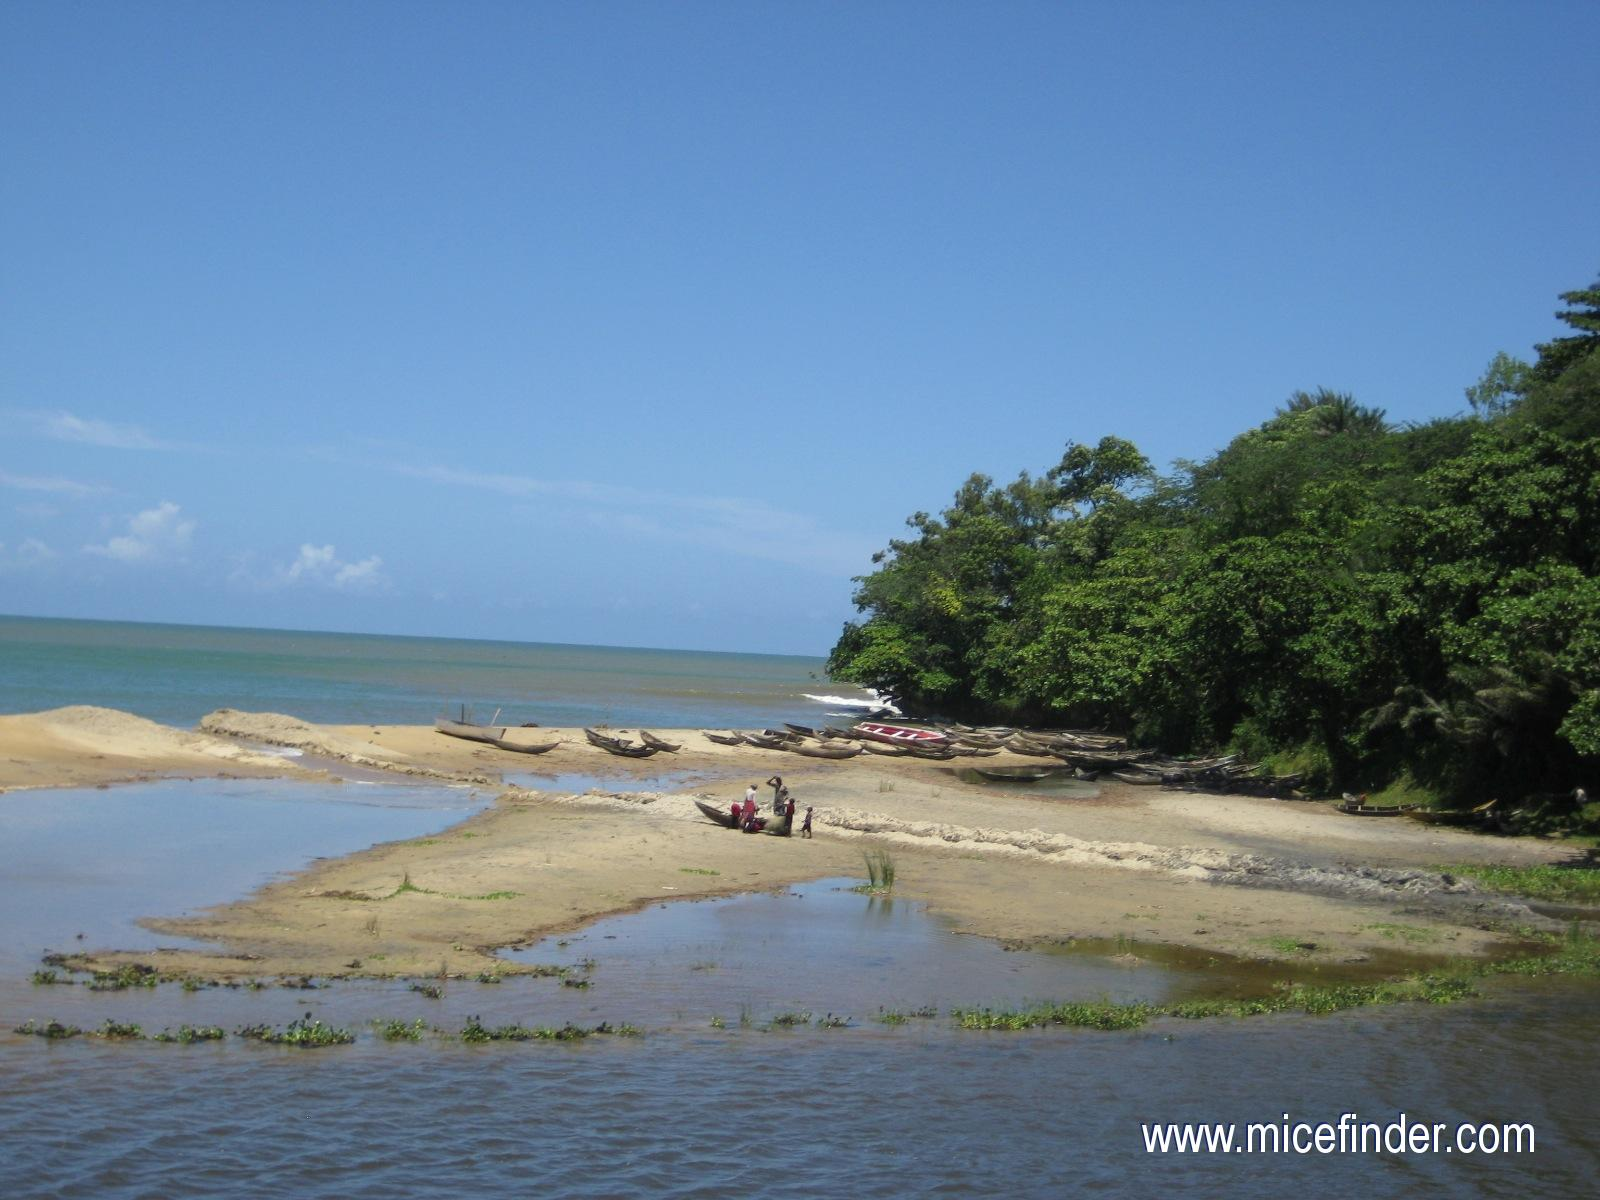 http://www.micefinder.com/images_pays/meeting_incentive_congress_convention_event_incentive_madagascar_barques_de_peche_a_Mahanoro_-_cote_est_h.jpg